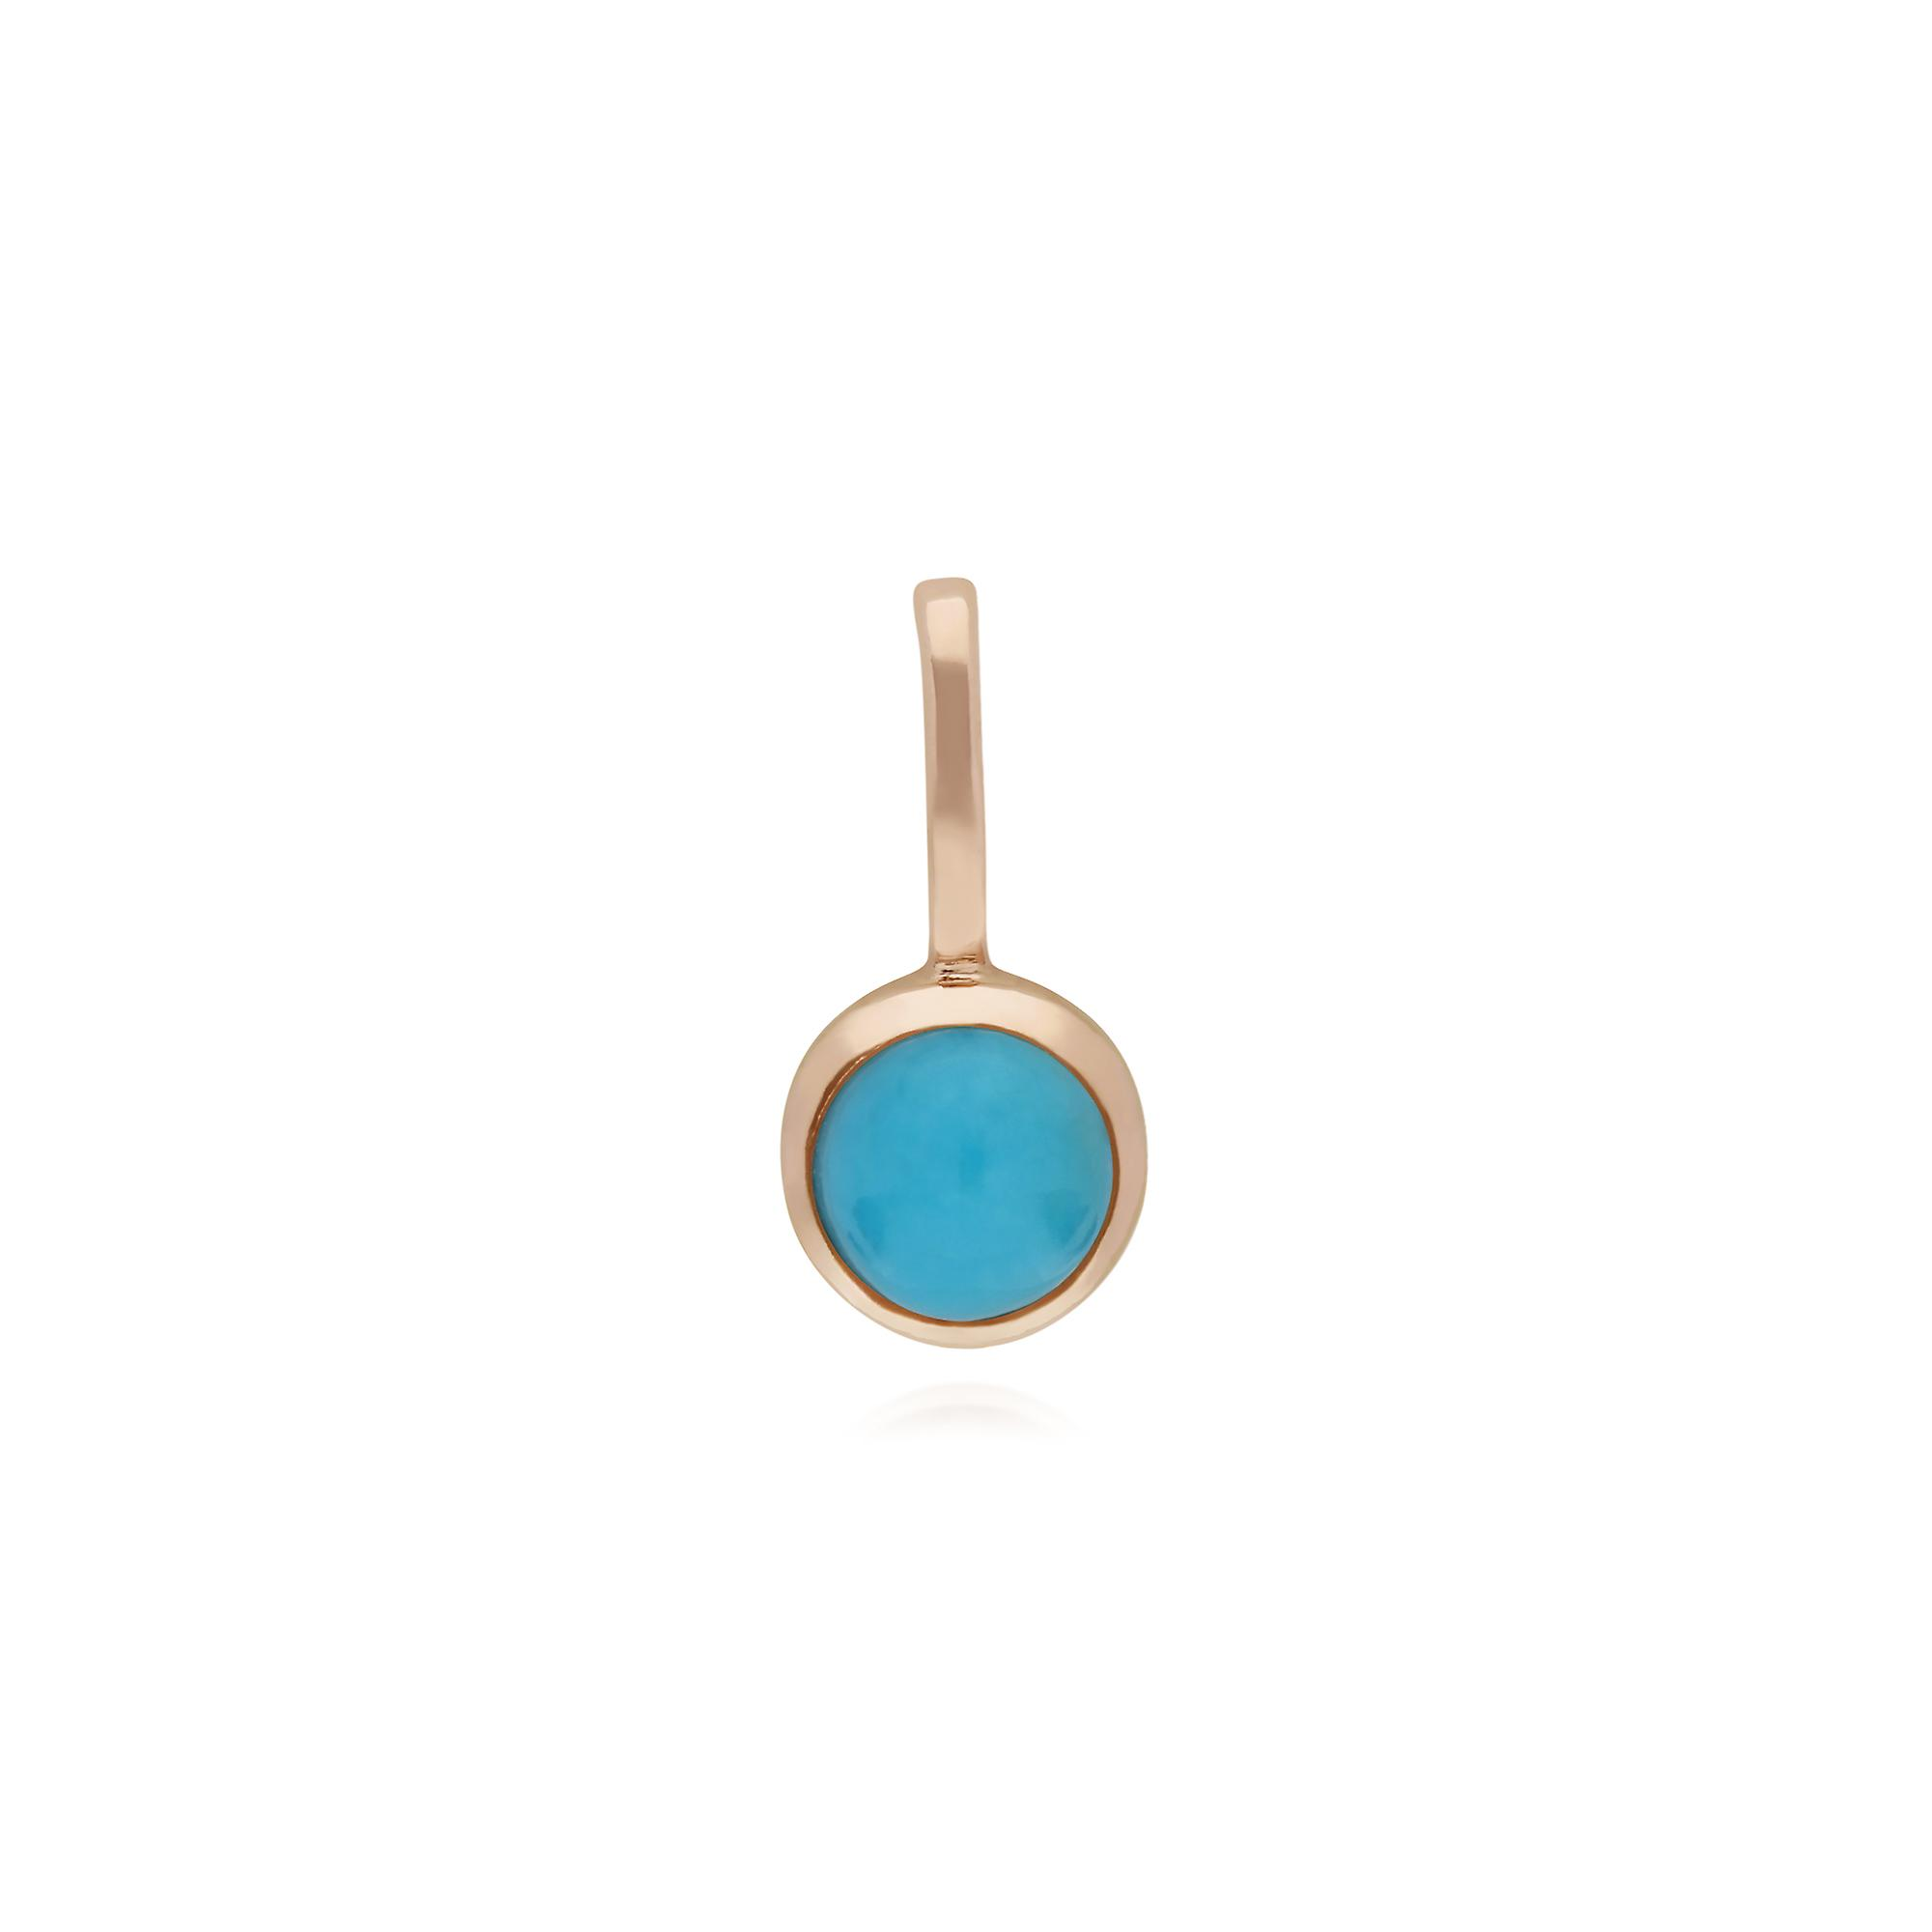 Gemondo Rose Gold Plated Sterling Silver Turquoise Charm